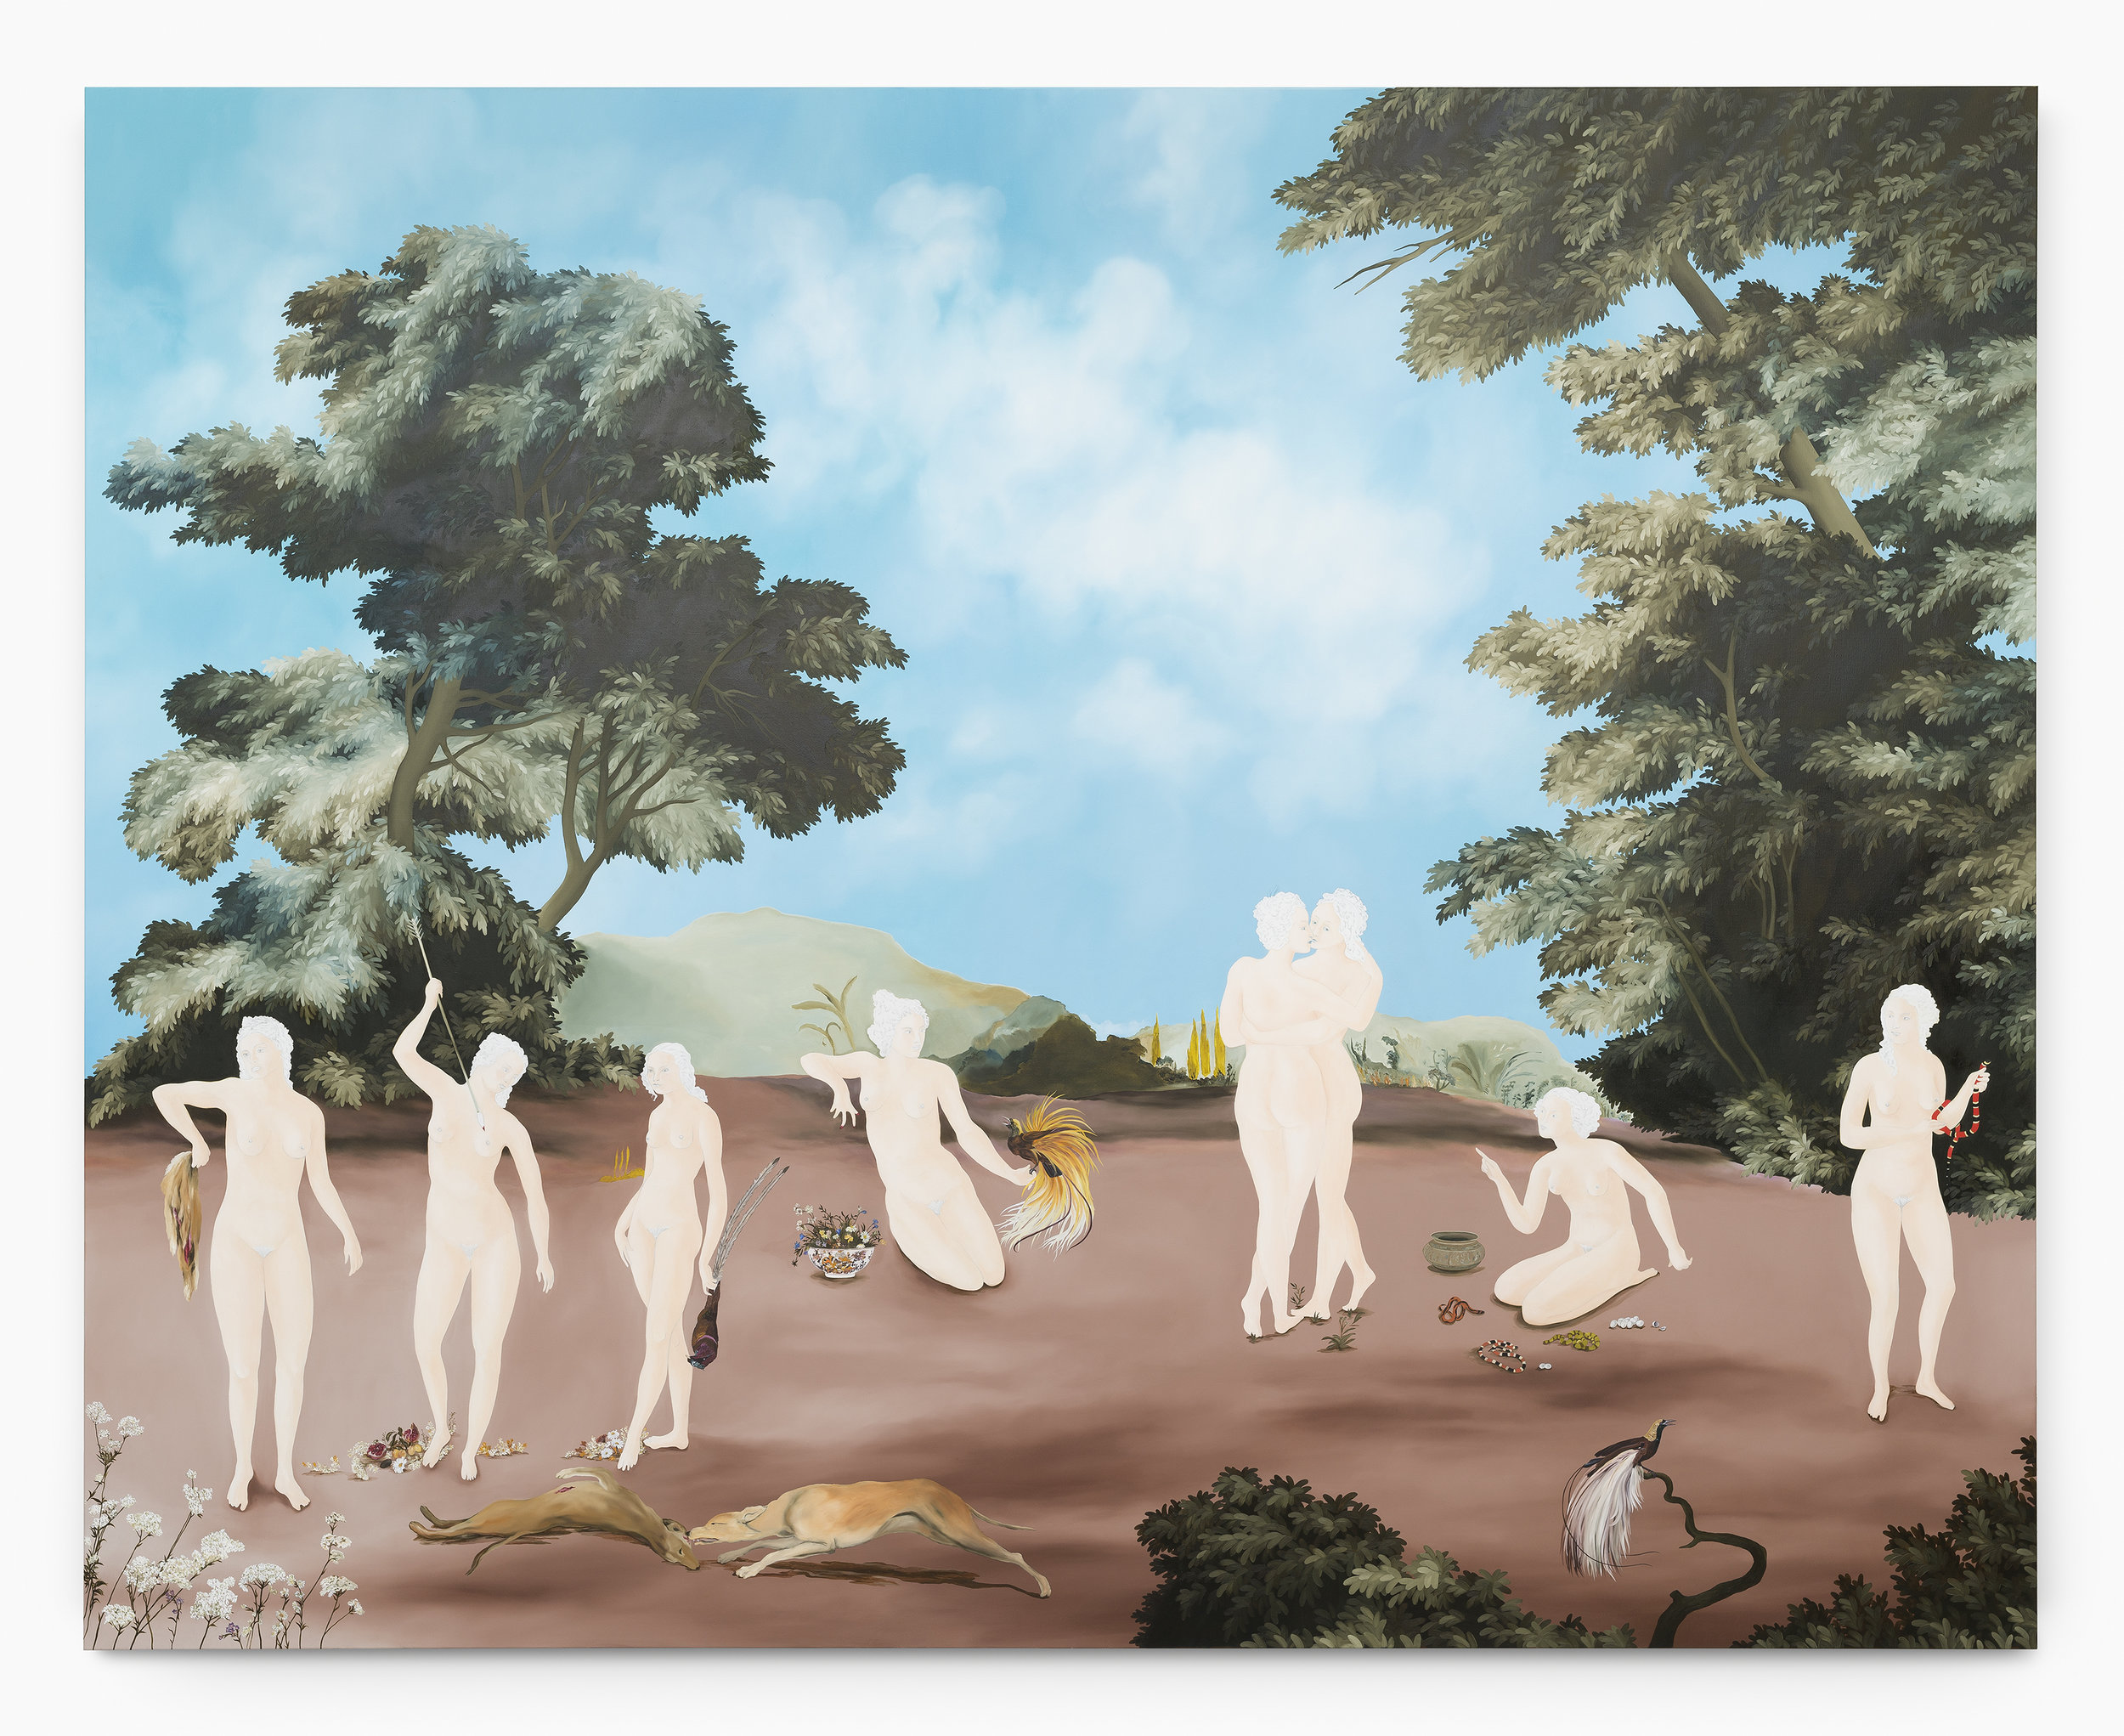 Sanam Khatibi,  Empire of the birds , 2017 Oil and pencil on canvas 200 x 250 cm 78 3/4 x 98 3/8 in. Image courtesy the artist galerie Rodolphe Janssen, Brussels Photo credit: Hugard & Vanoverschelde photography